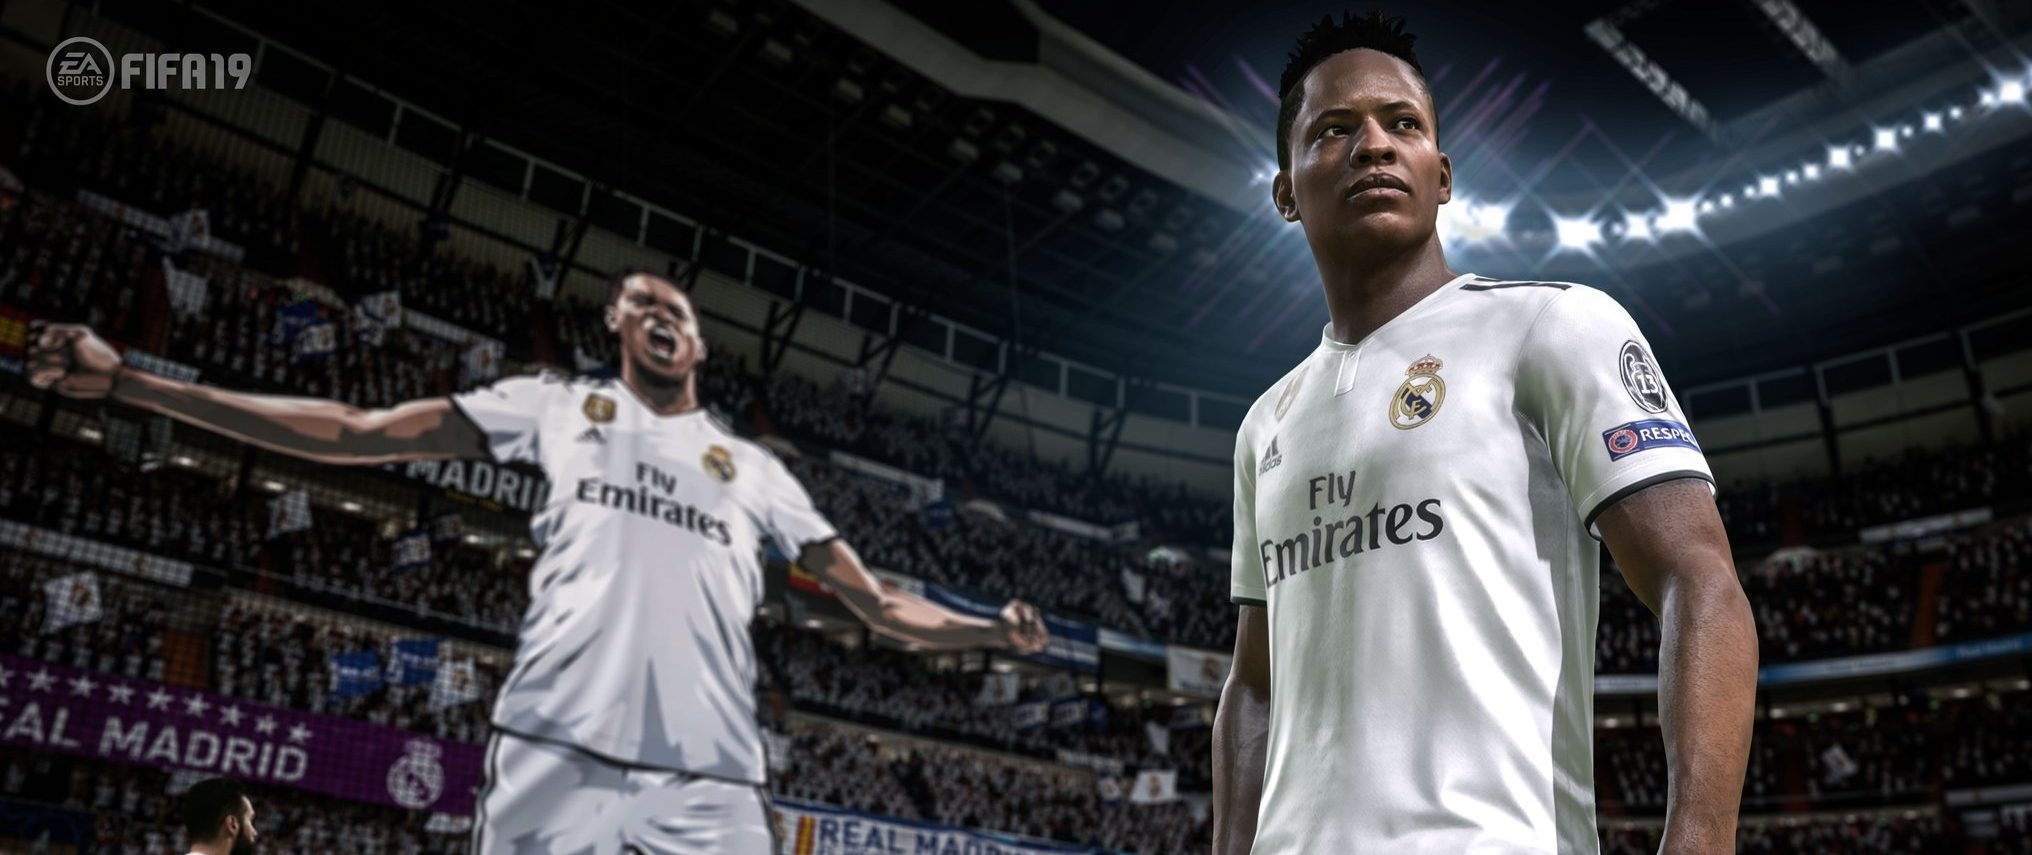 FIFA 19: The Journey 3 hat gleich drei spielbare Helden! – Gamescom-Trailer